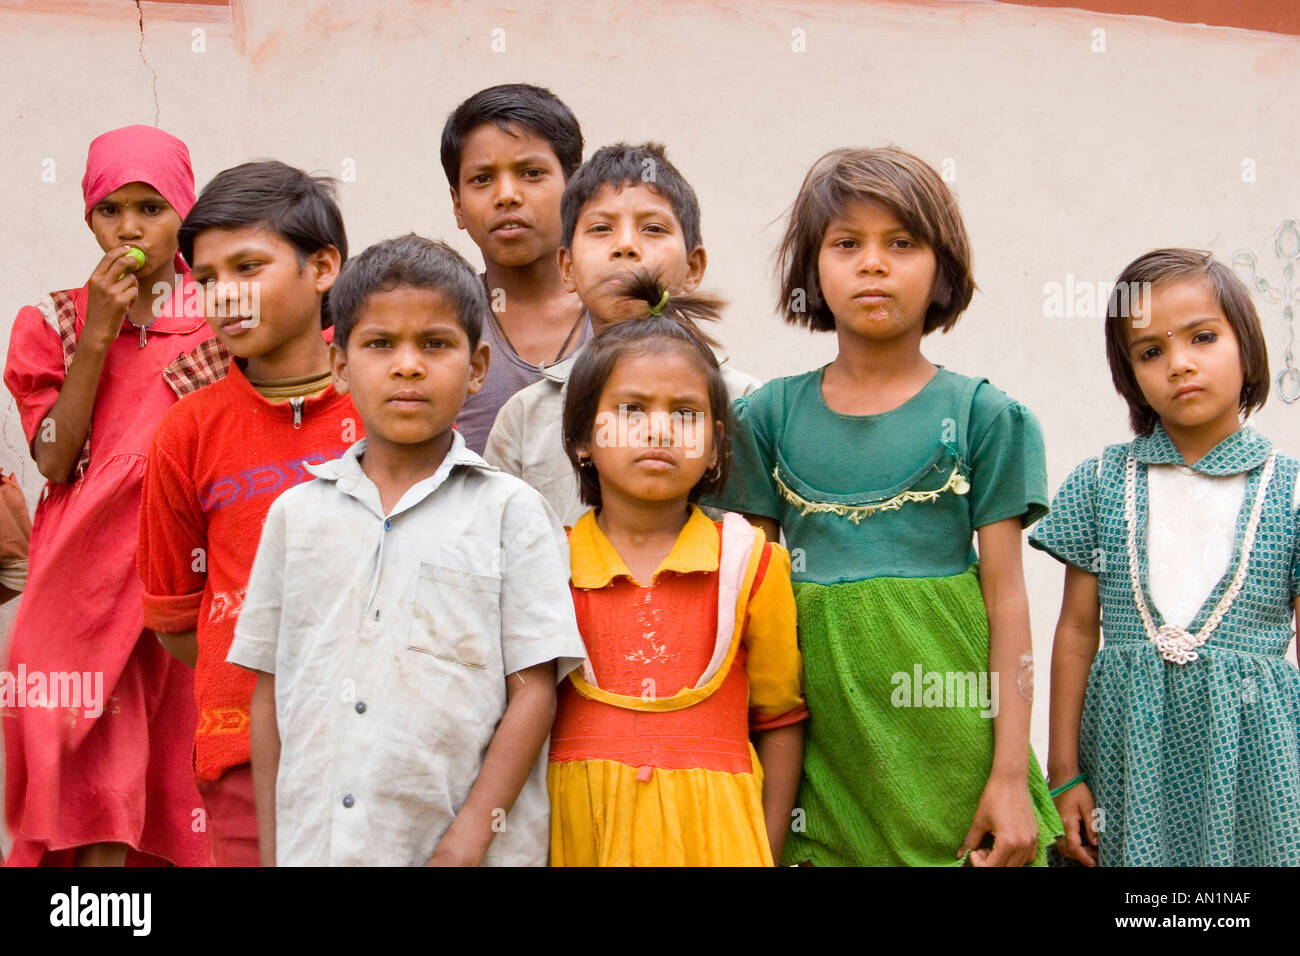 how to find a missing child in india